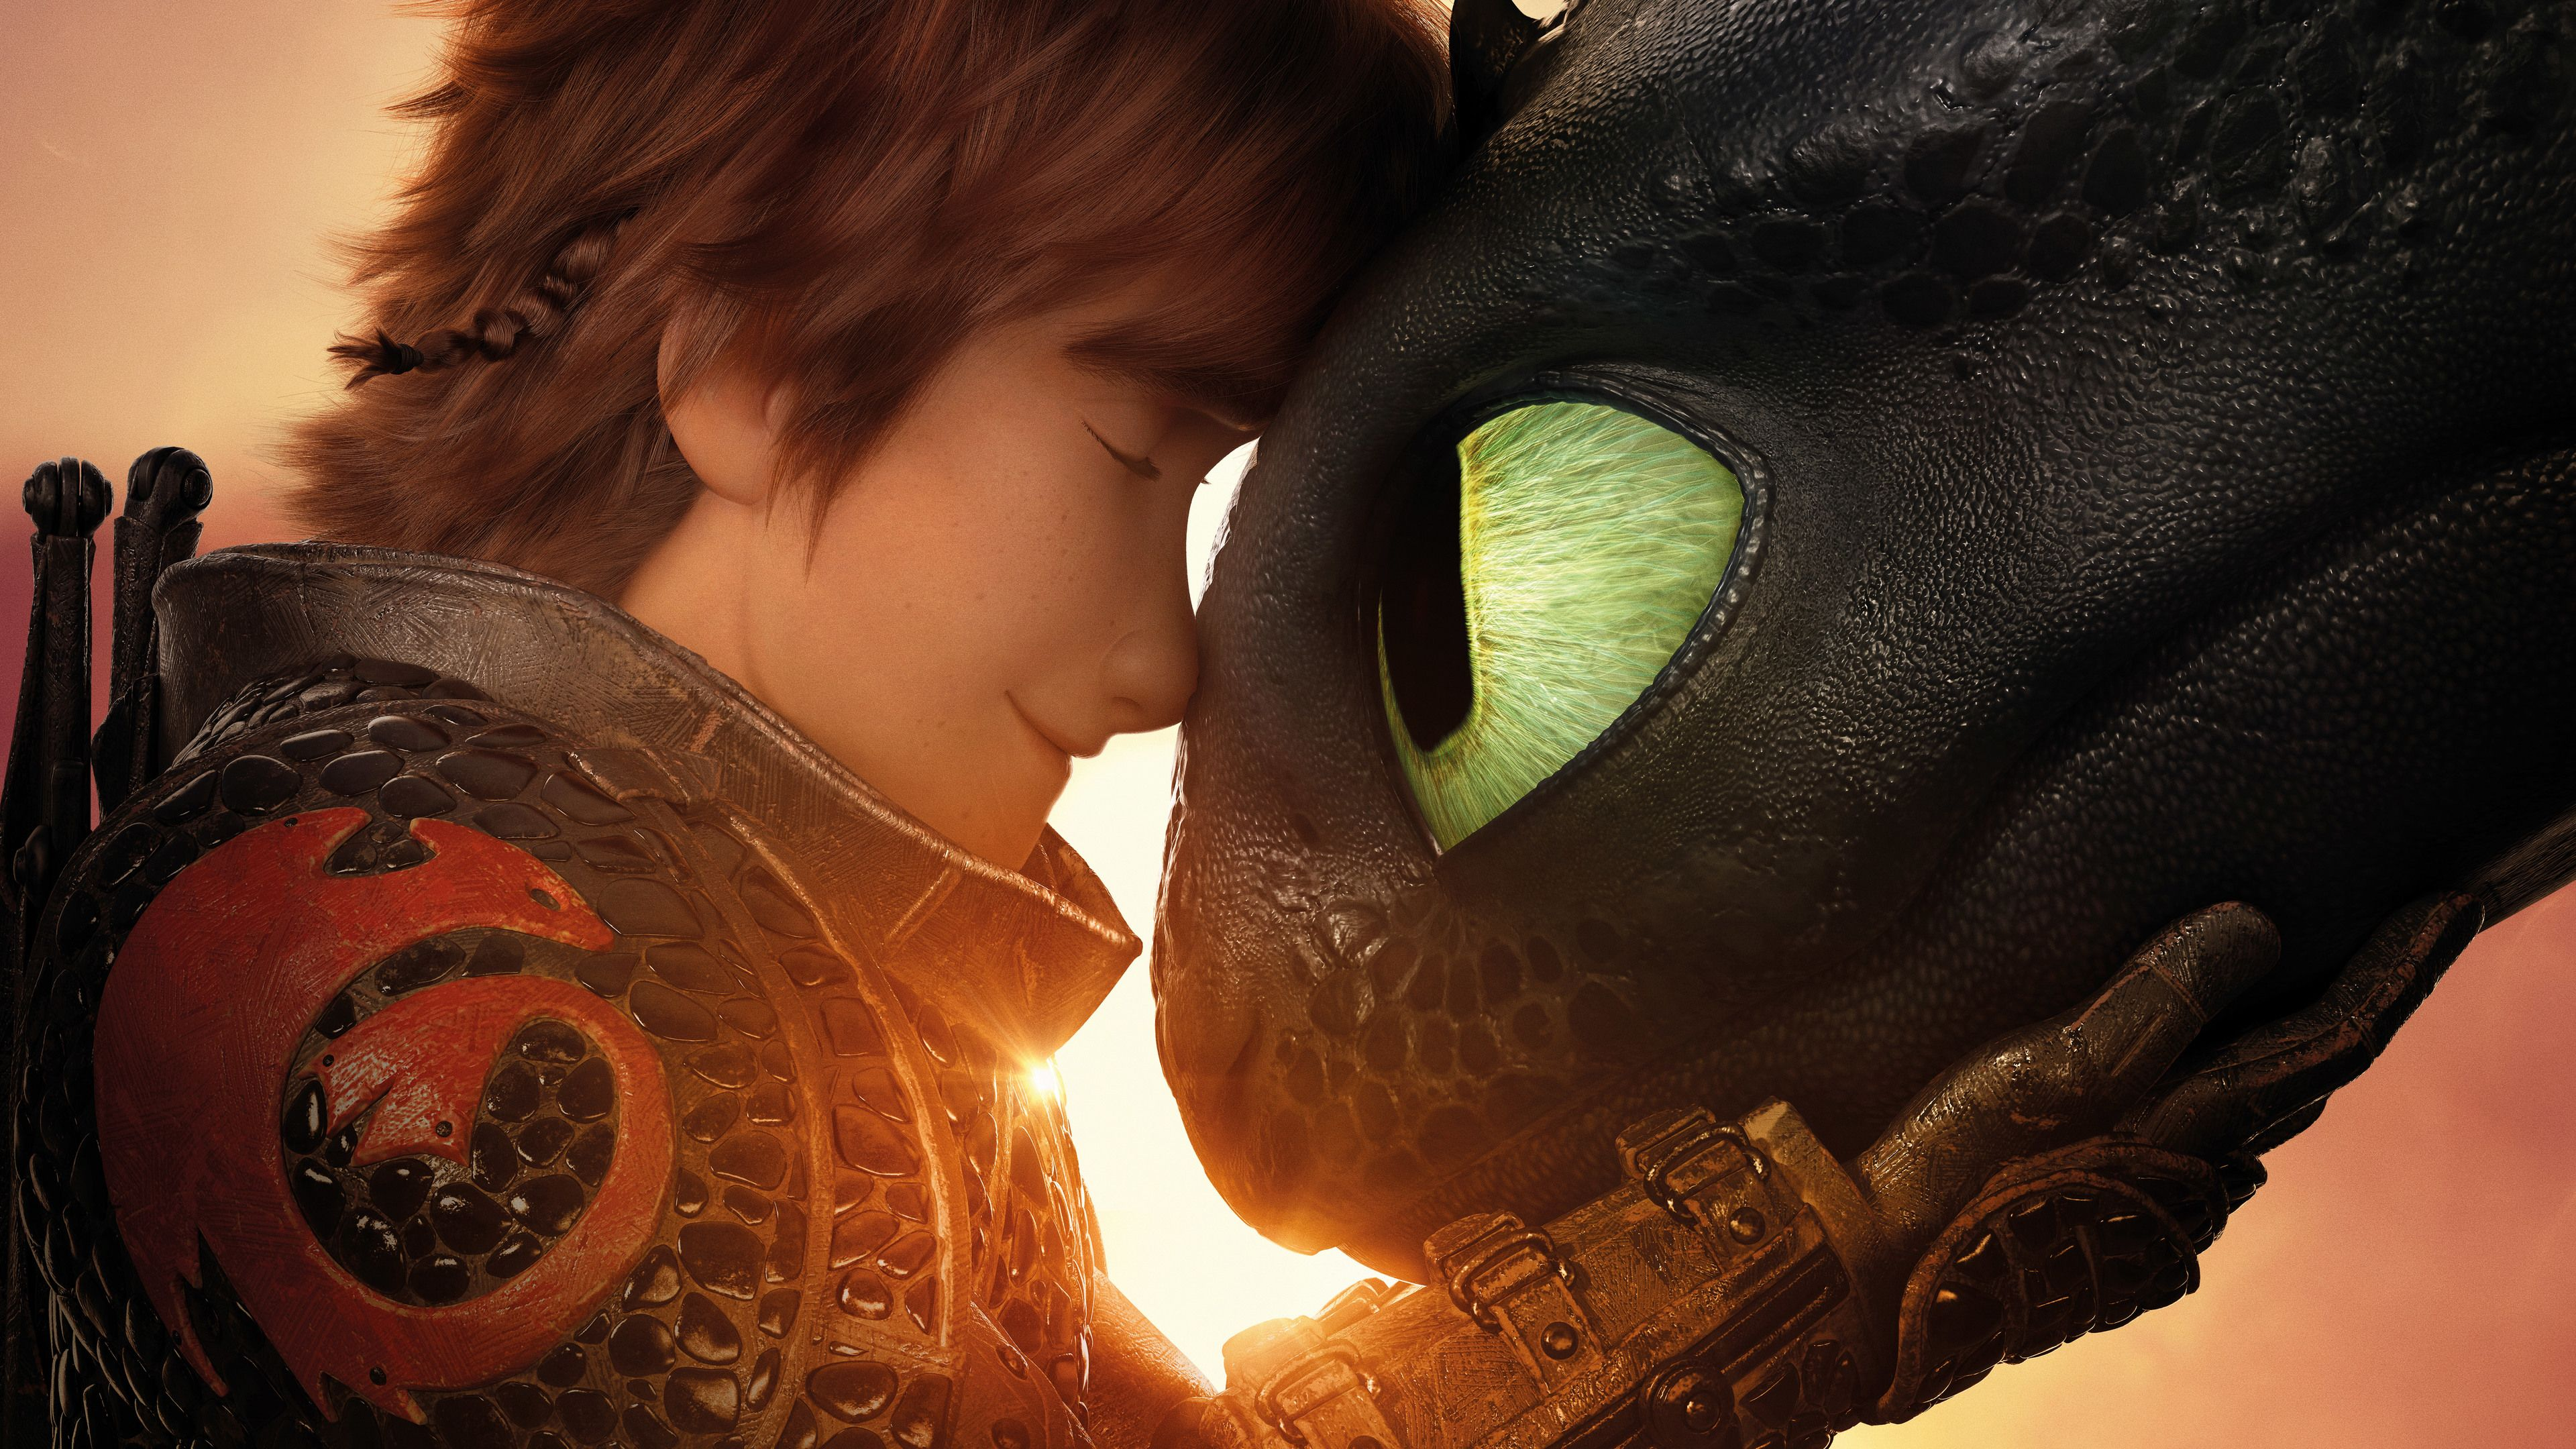 How To Train Your Dragon The Hidden World 4k 2019 Movies Wallpapers How To Train Your Dragon How Train Your Dragon How To Train Your Dragon How To Train Your